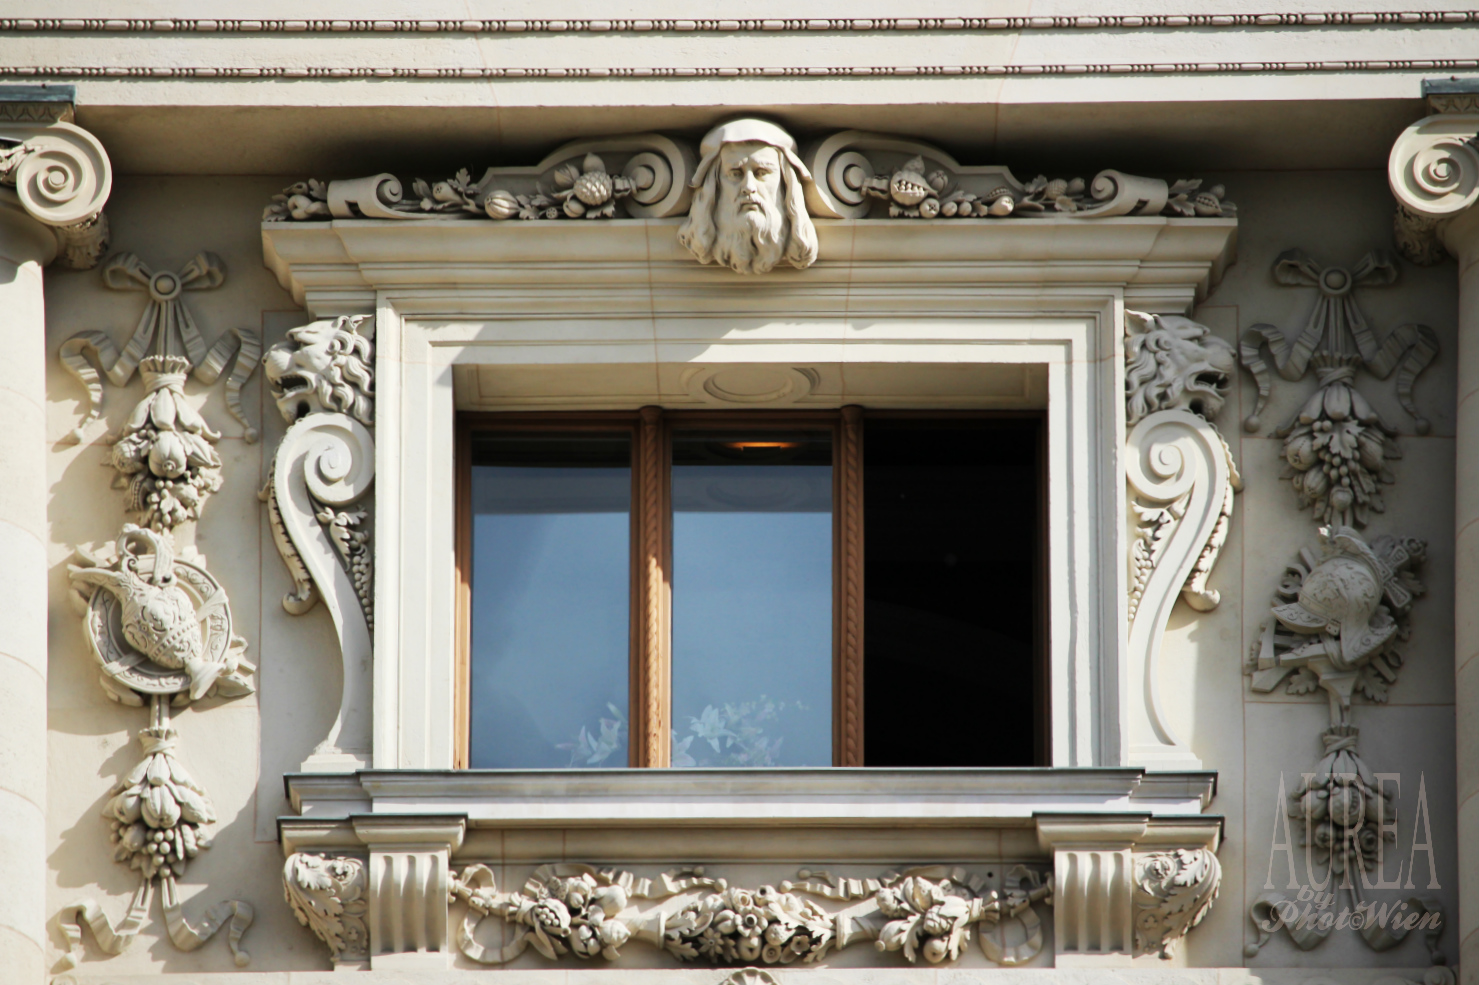 Hofburg Museum window_AUREA